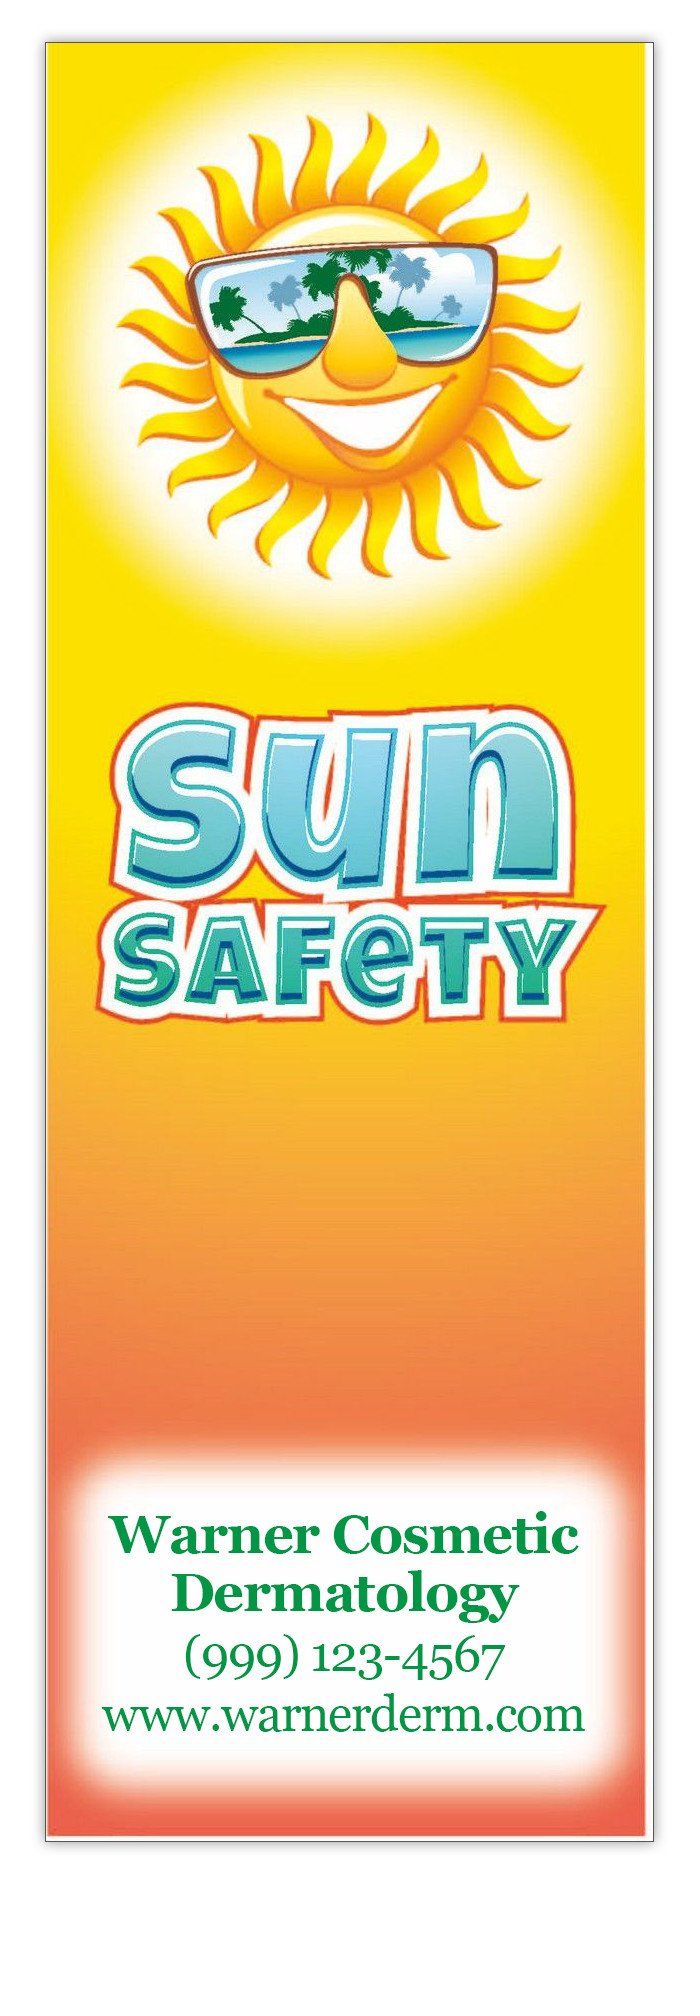 Sun Safety Bookmarks in Bulk (Qty of 250) - Promotional Item - Customize with your Information - Great for Mailings